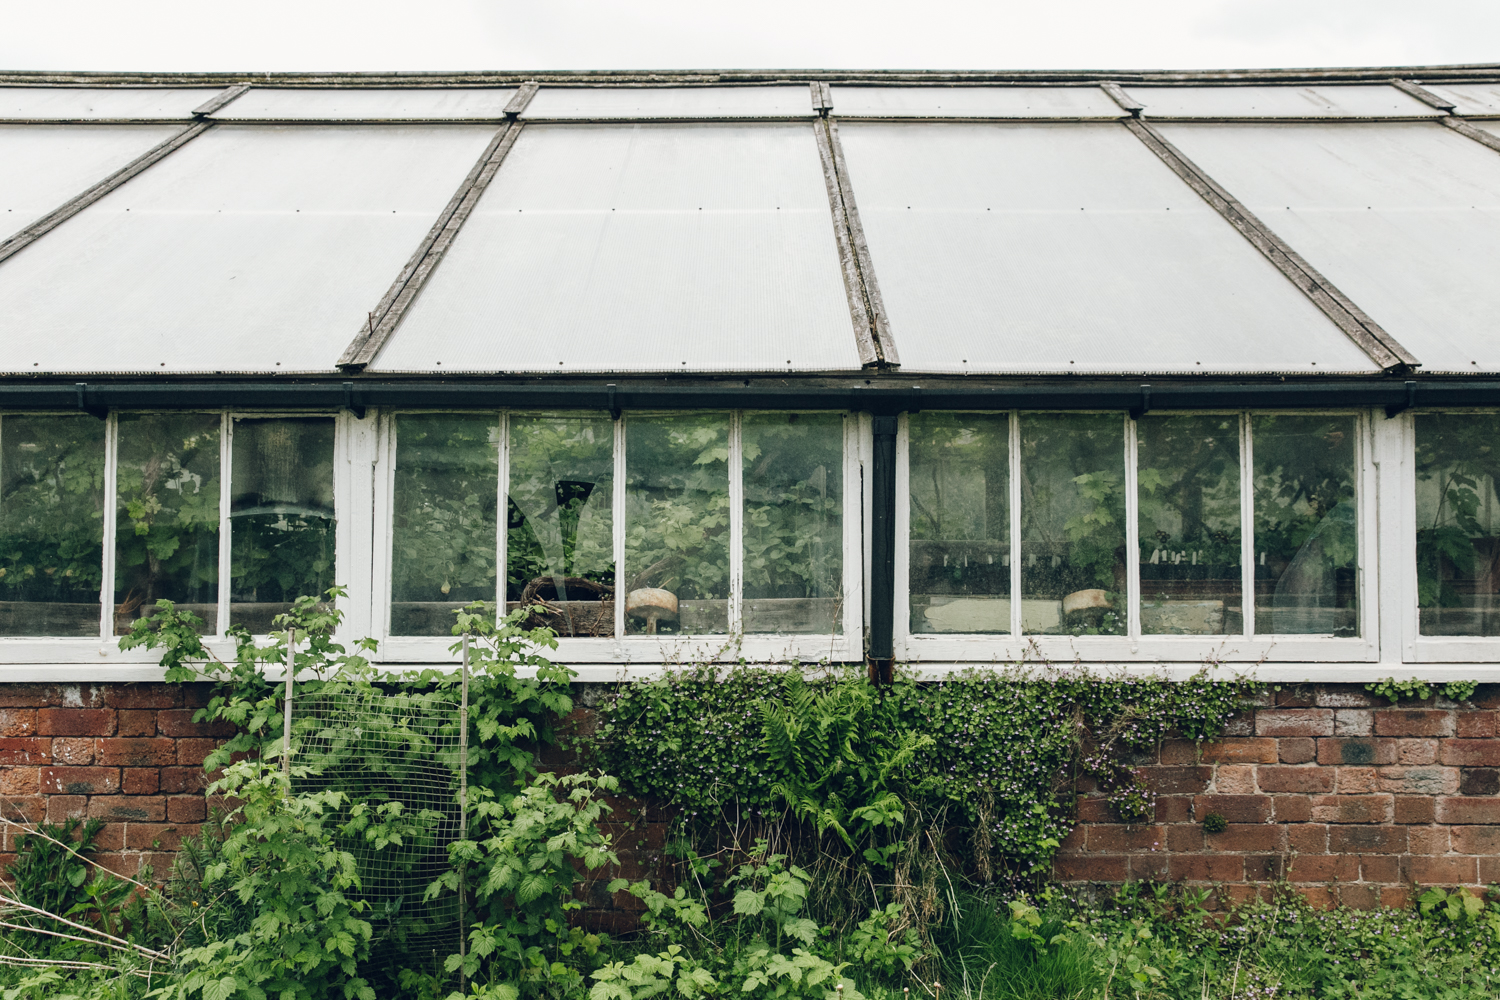 Haarkon Greenhouse Glasshouse Allotment Garden Vinery Vines Grapes Orchard plants trees leaf greenery